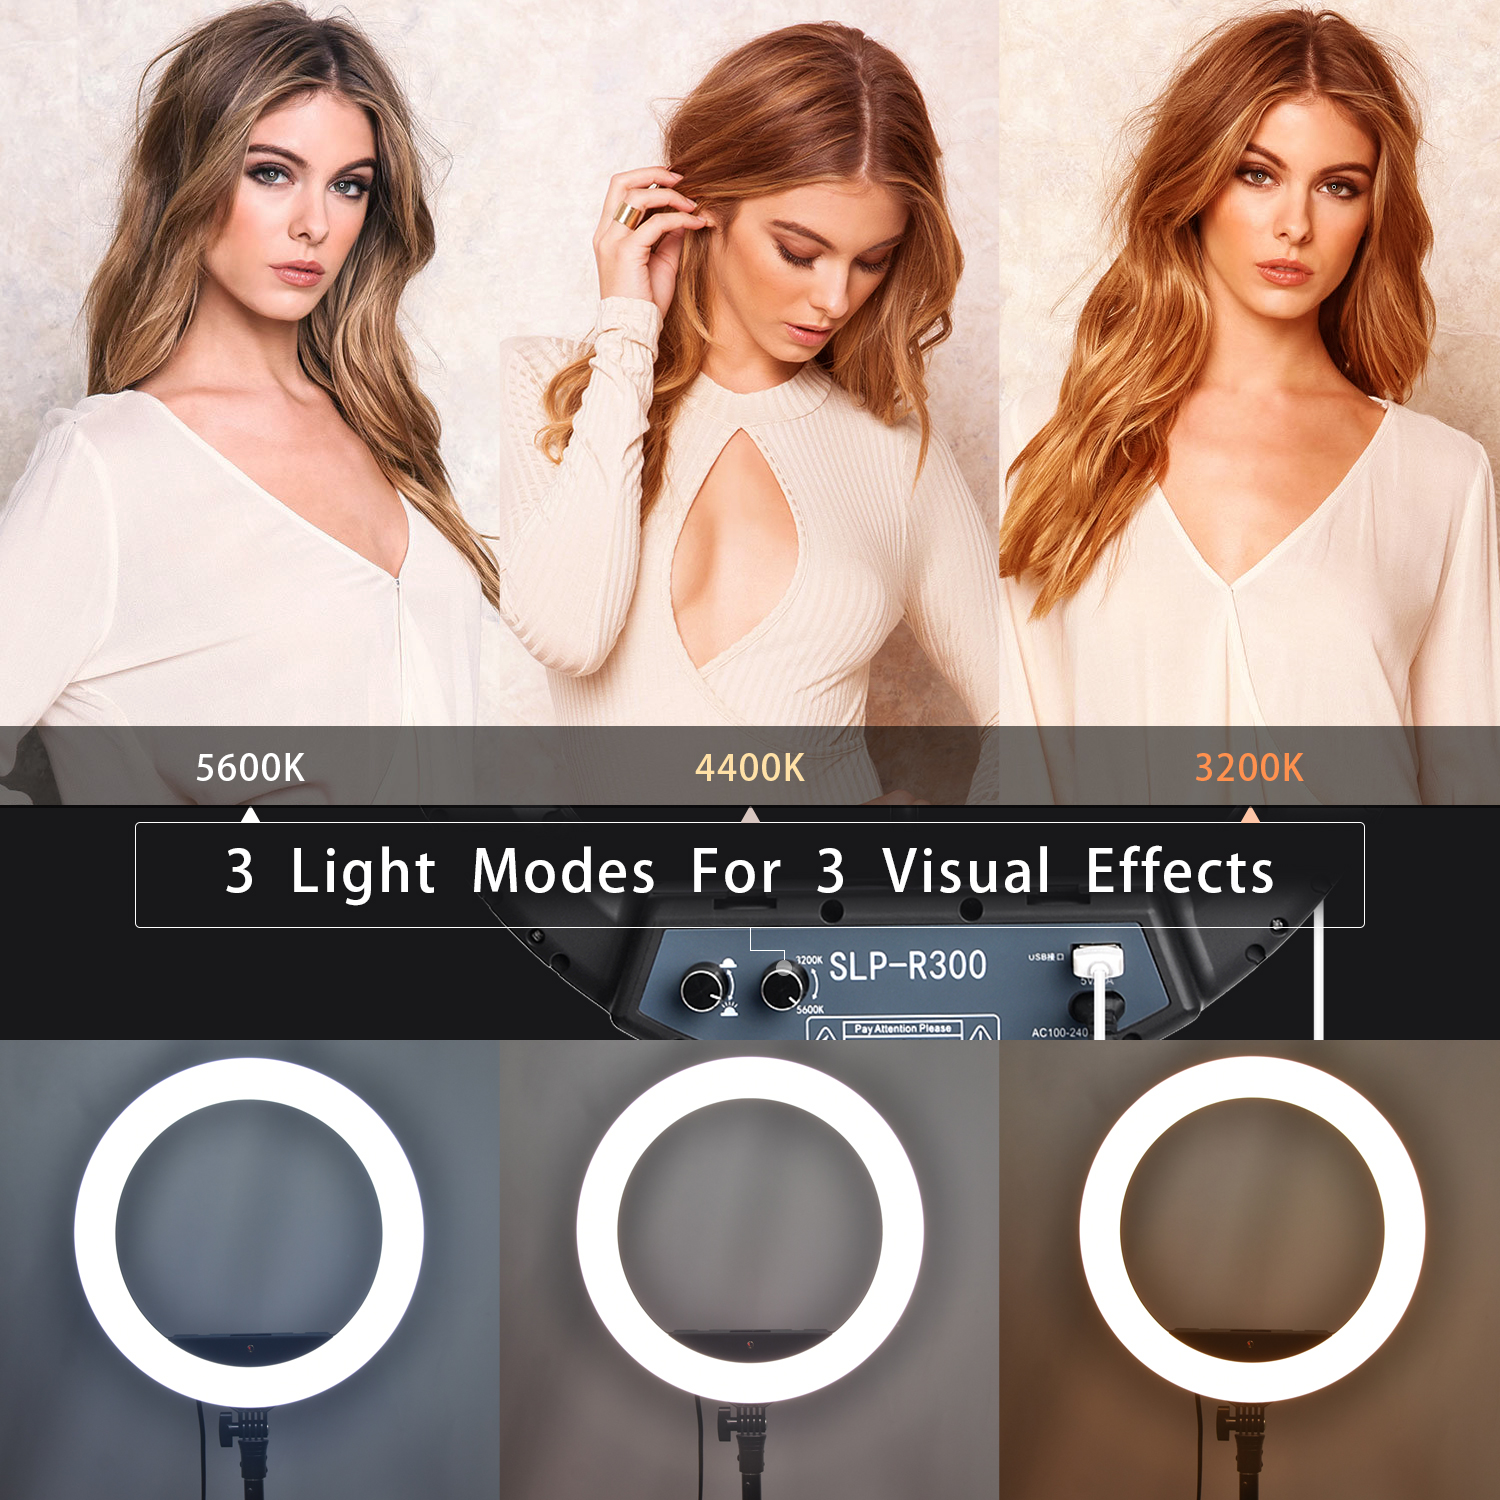 Ha3dd7af4f55642dbaff48fa6cbb21c943 fosoto LED Ring Light Selfie Photo Photography Lighting Ringlight lamp With Tripod Stand For Photo Studio Makeup Video Live Show